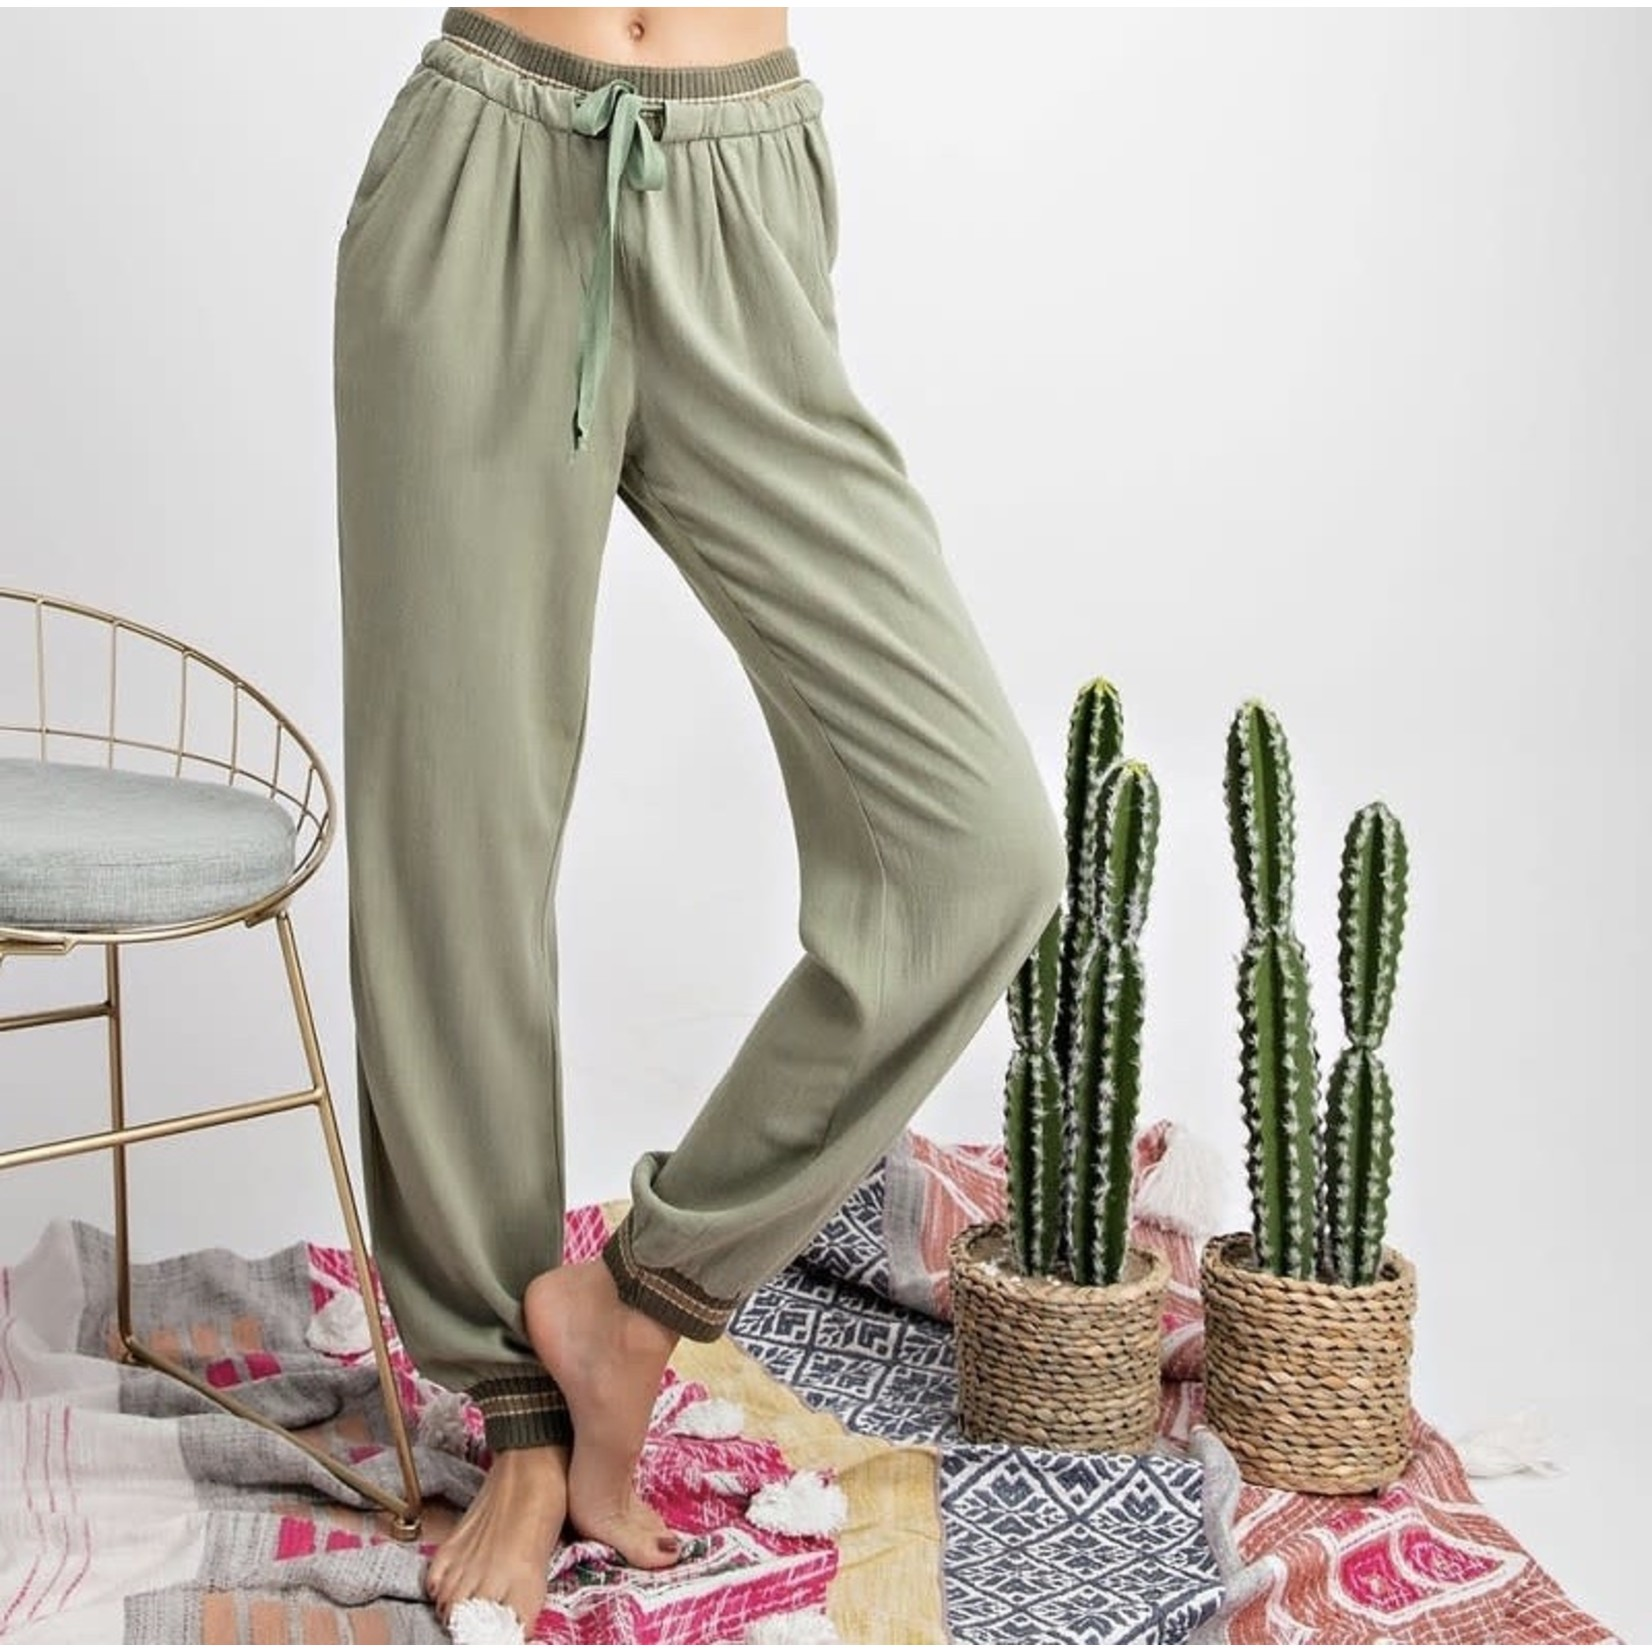 Easel Sage Comfy Relaxed Fit + Rib Band Detail Pants